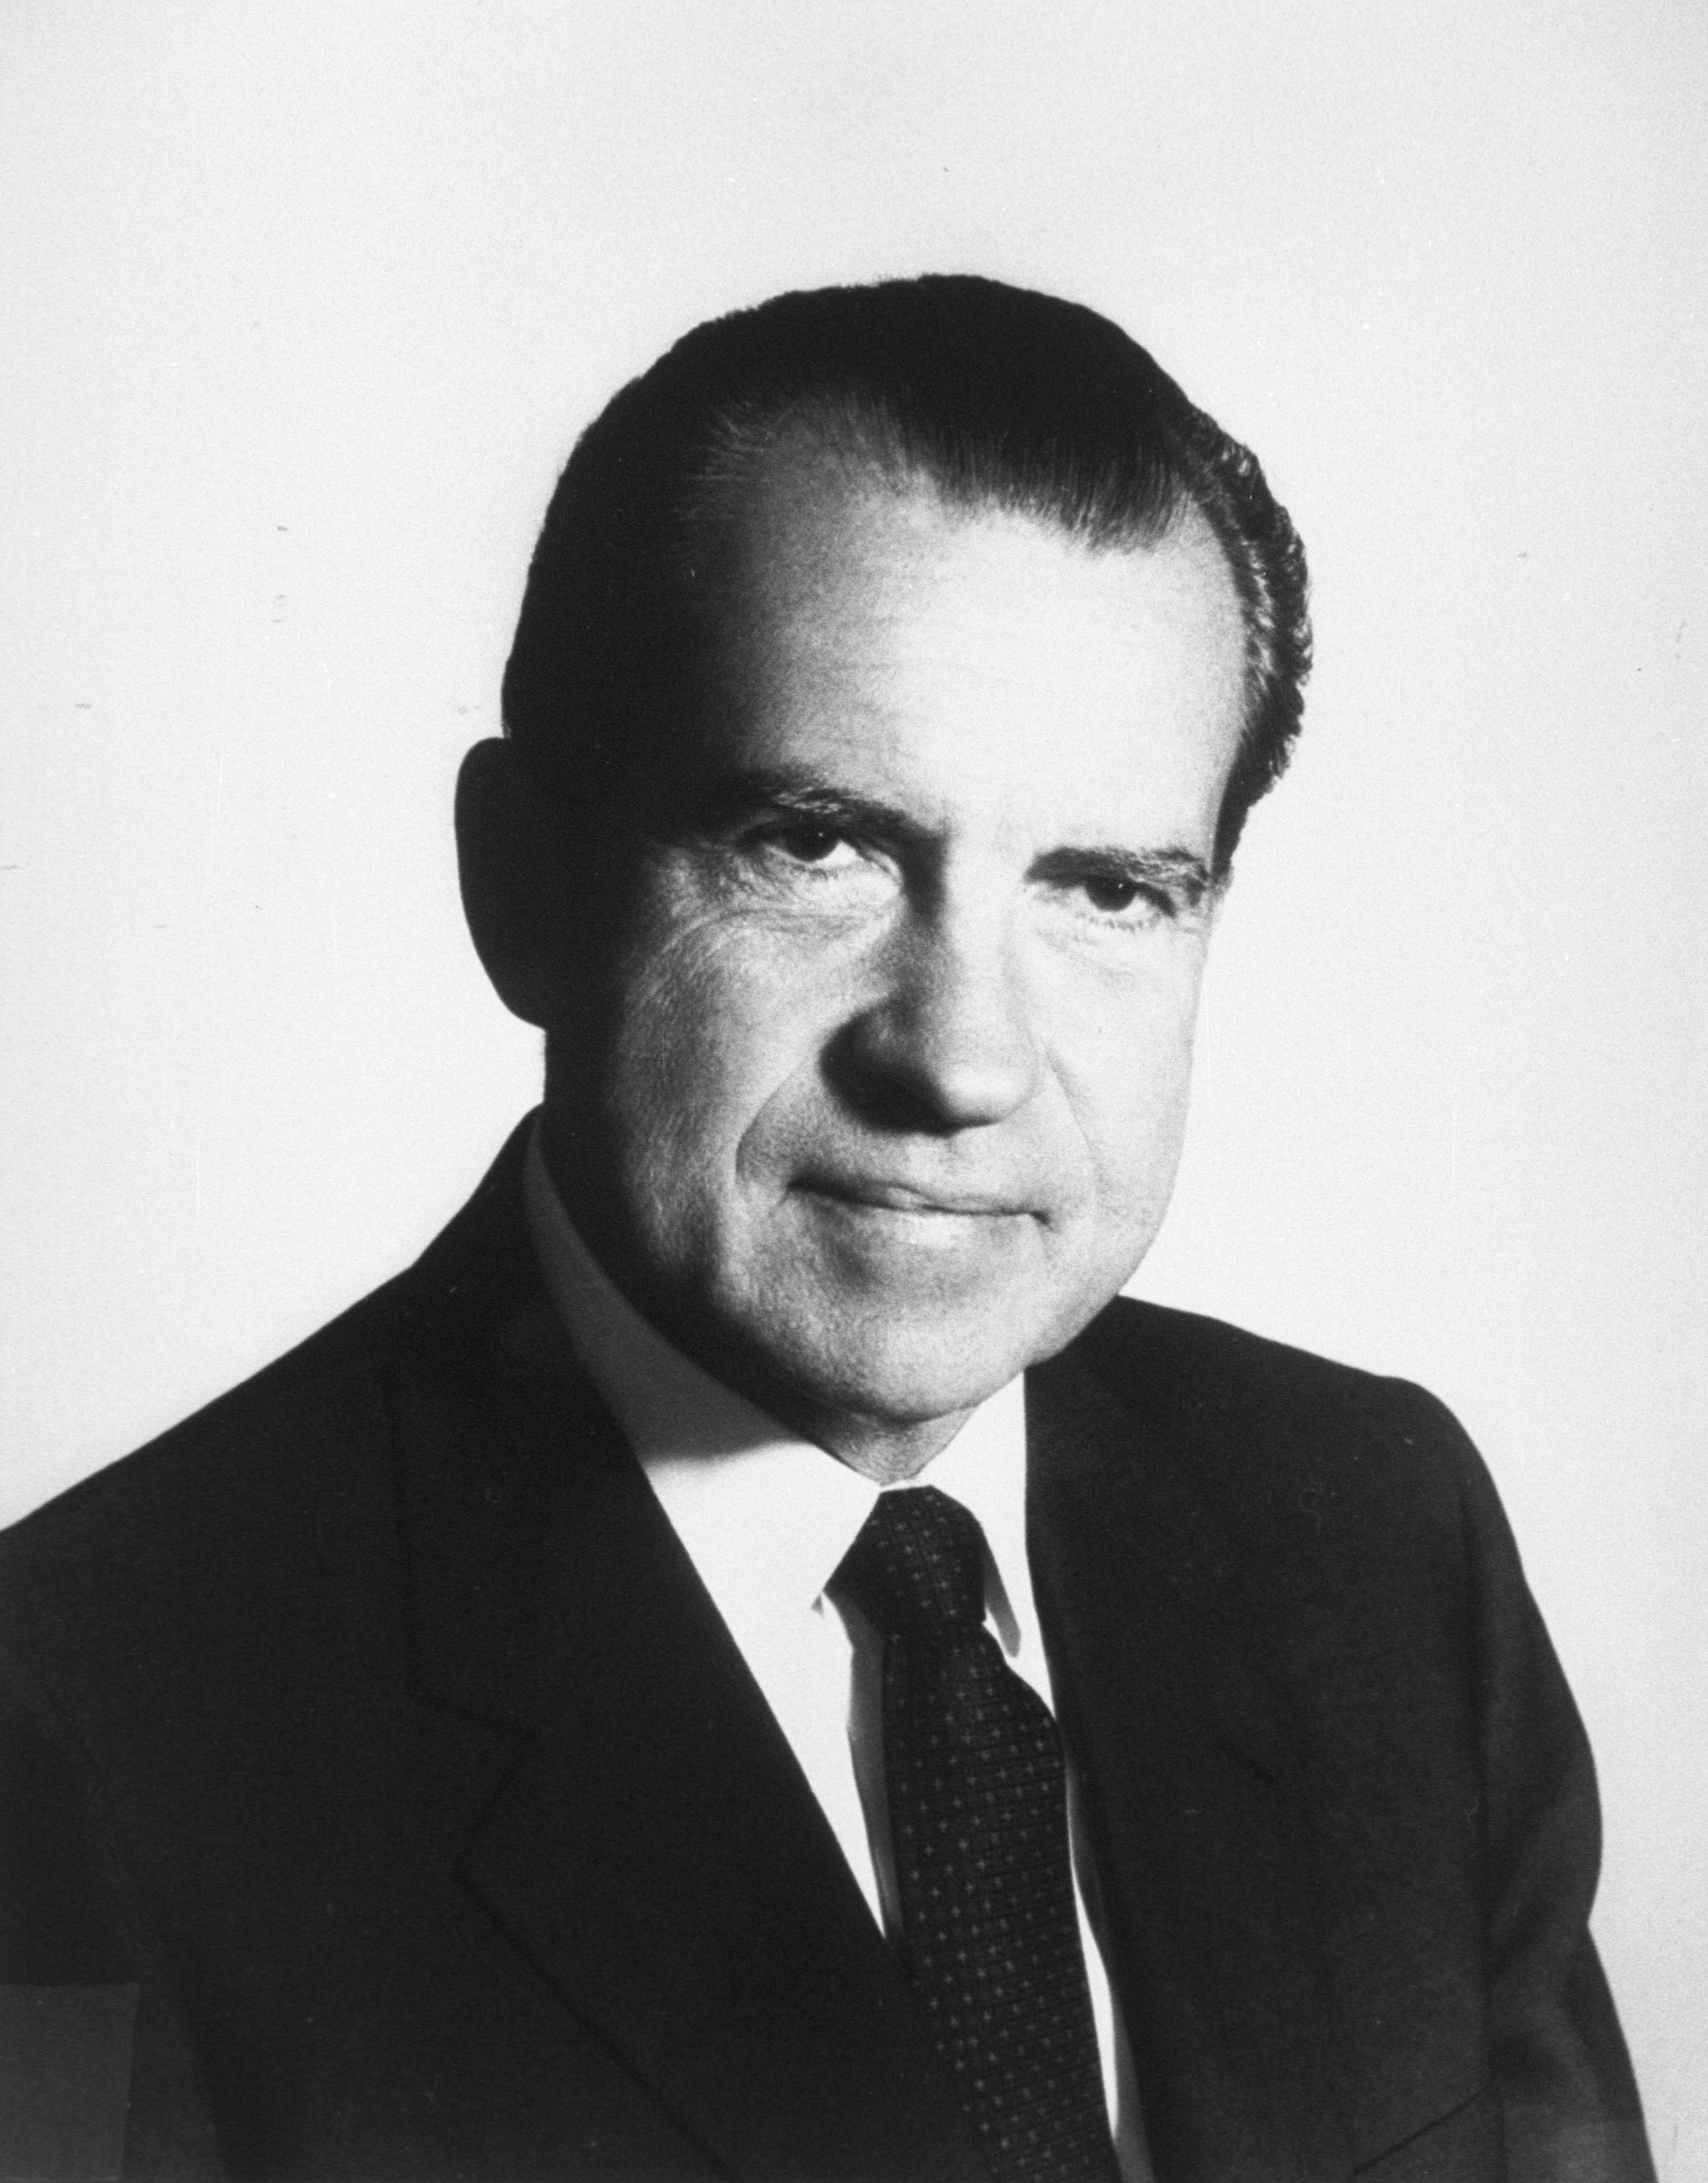 nixon s legacy forty years after his pardon